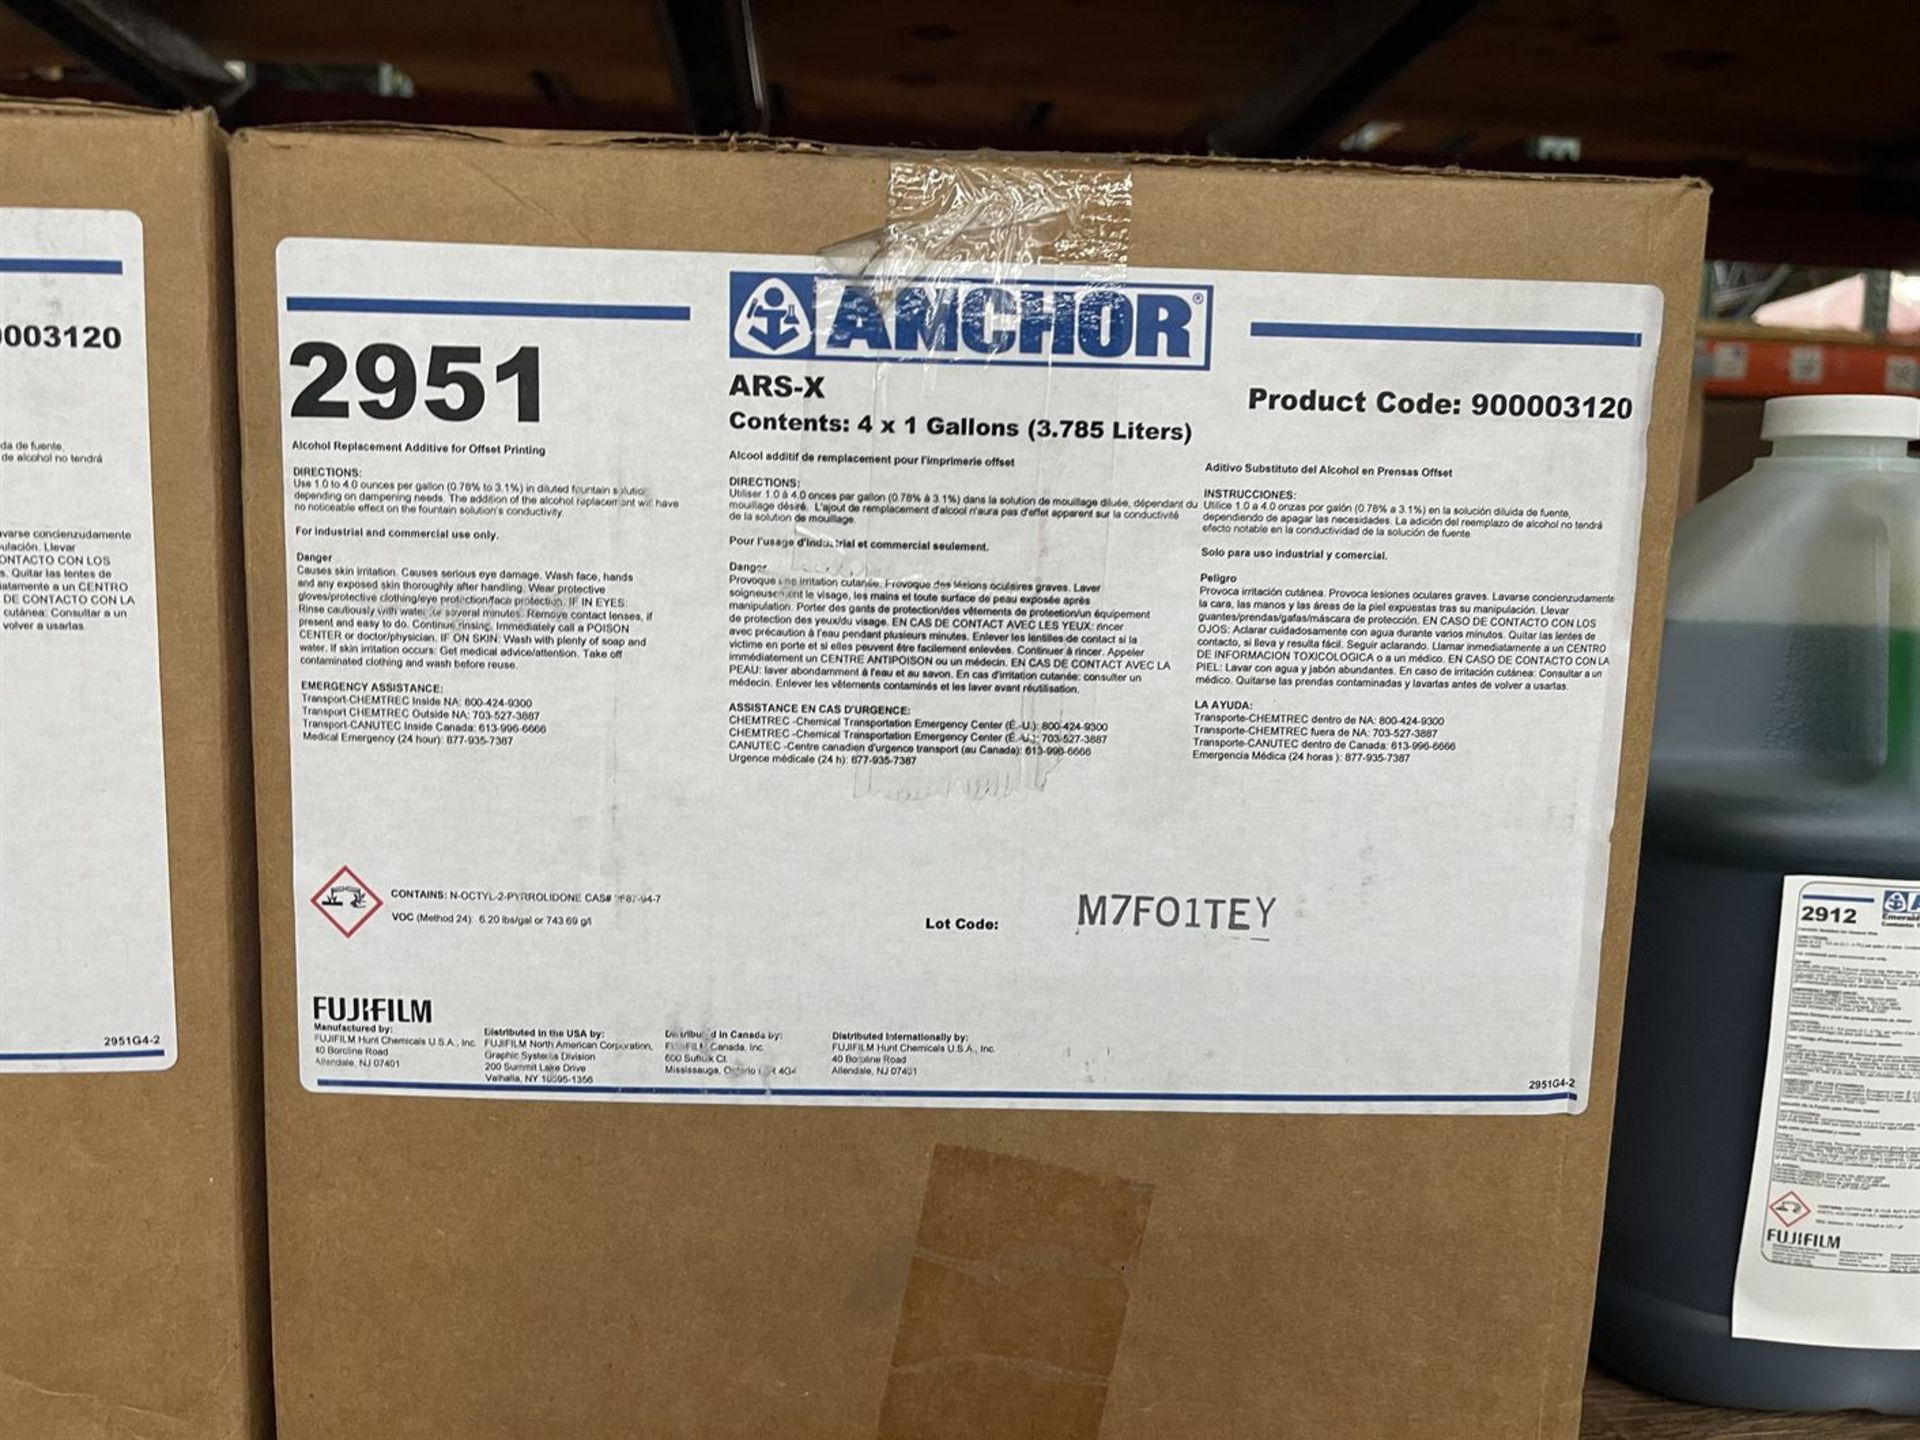 Lot of Assorted Printing Chemicals Including CMP Syn-Tac Pressroom Maintenance Kits, MP 2000 Poly - Image 4 of 5